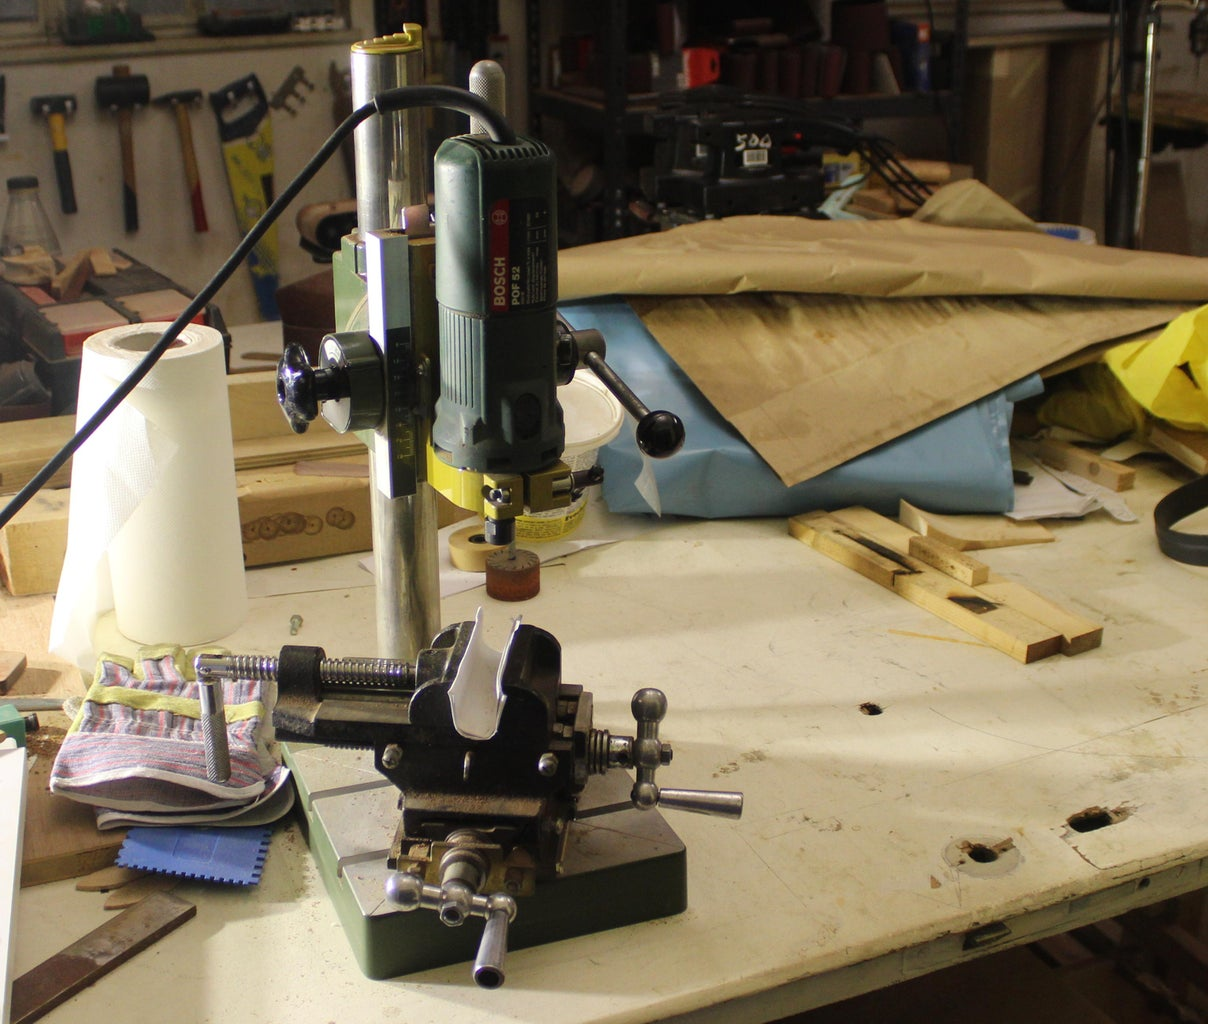 Poor Man's Milling Machine for Wood (for Making Cat Doors, Sliding Bevels and Other Cool Stuff).